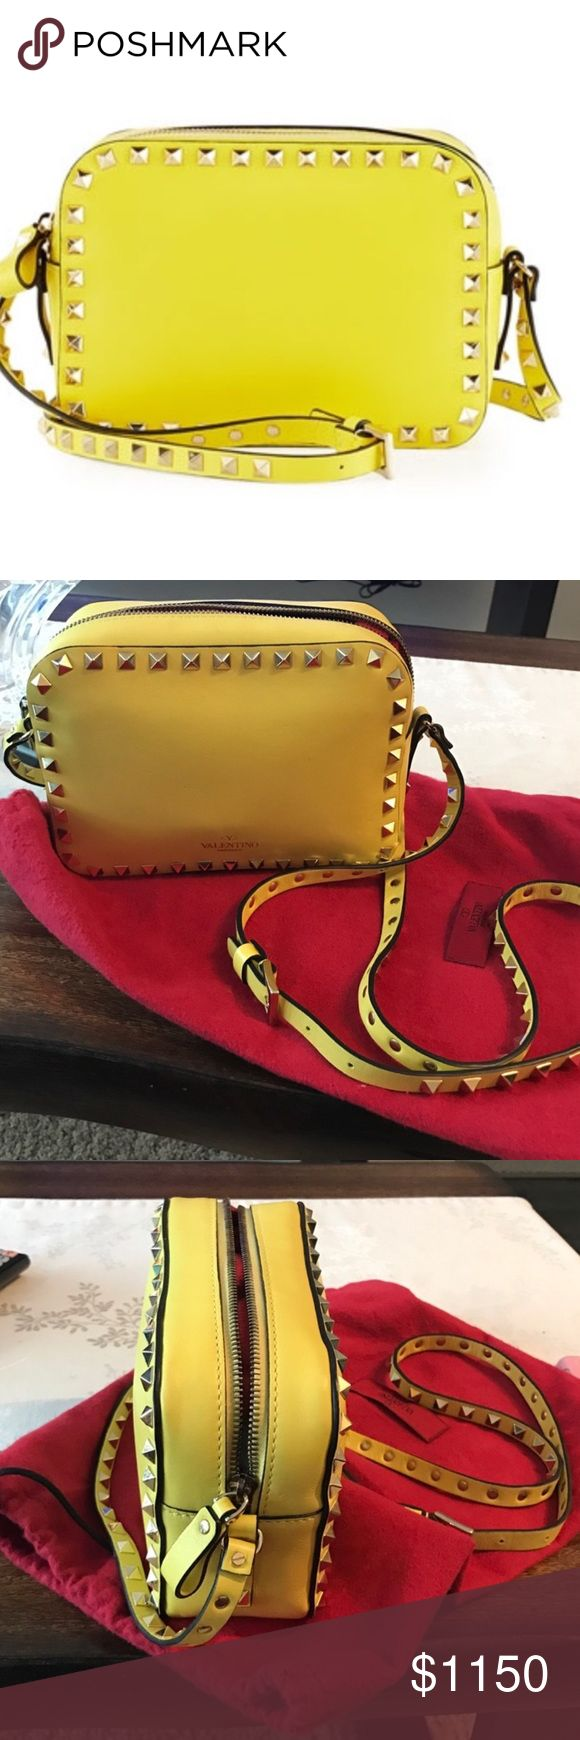 Authentic Valentino Crossbody Authentic Valentino Crossbody. Worn once but in an excellent condition. Bought from Neiman Marcus. Includes tag amd Dust Bag. Valentino Bags Crossbody Bags